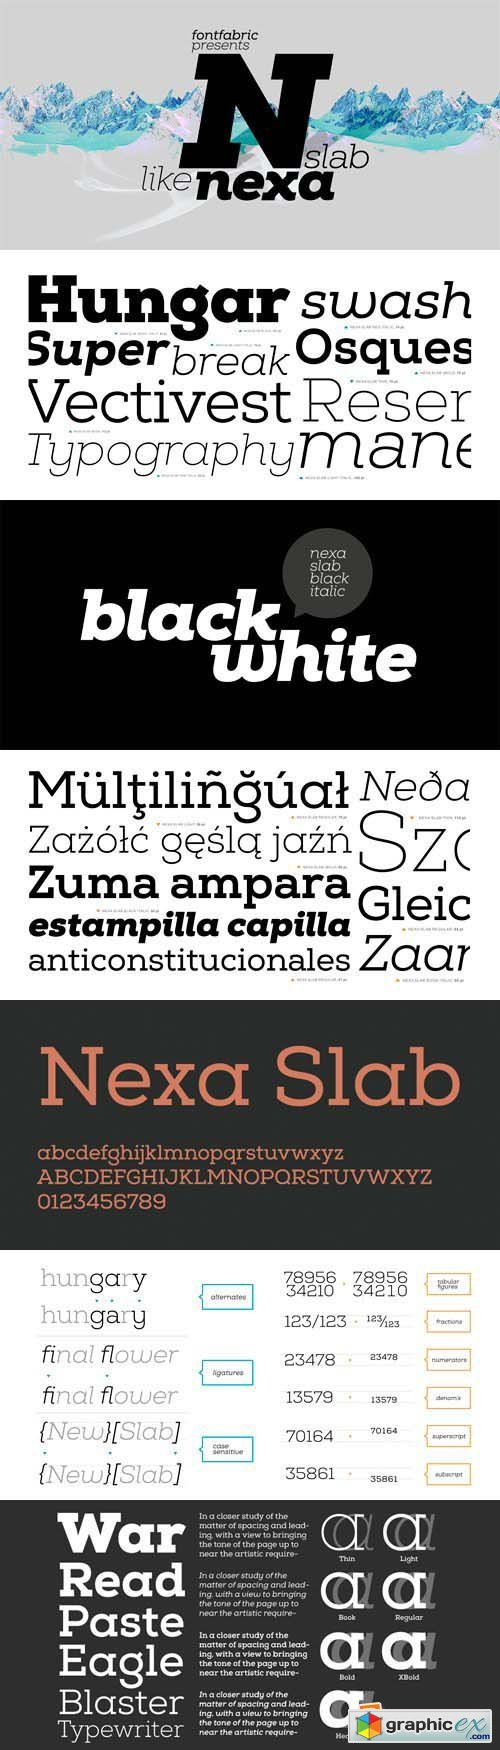 Nexa Slab Font Family - 24 Fonts for $99